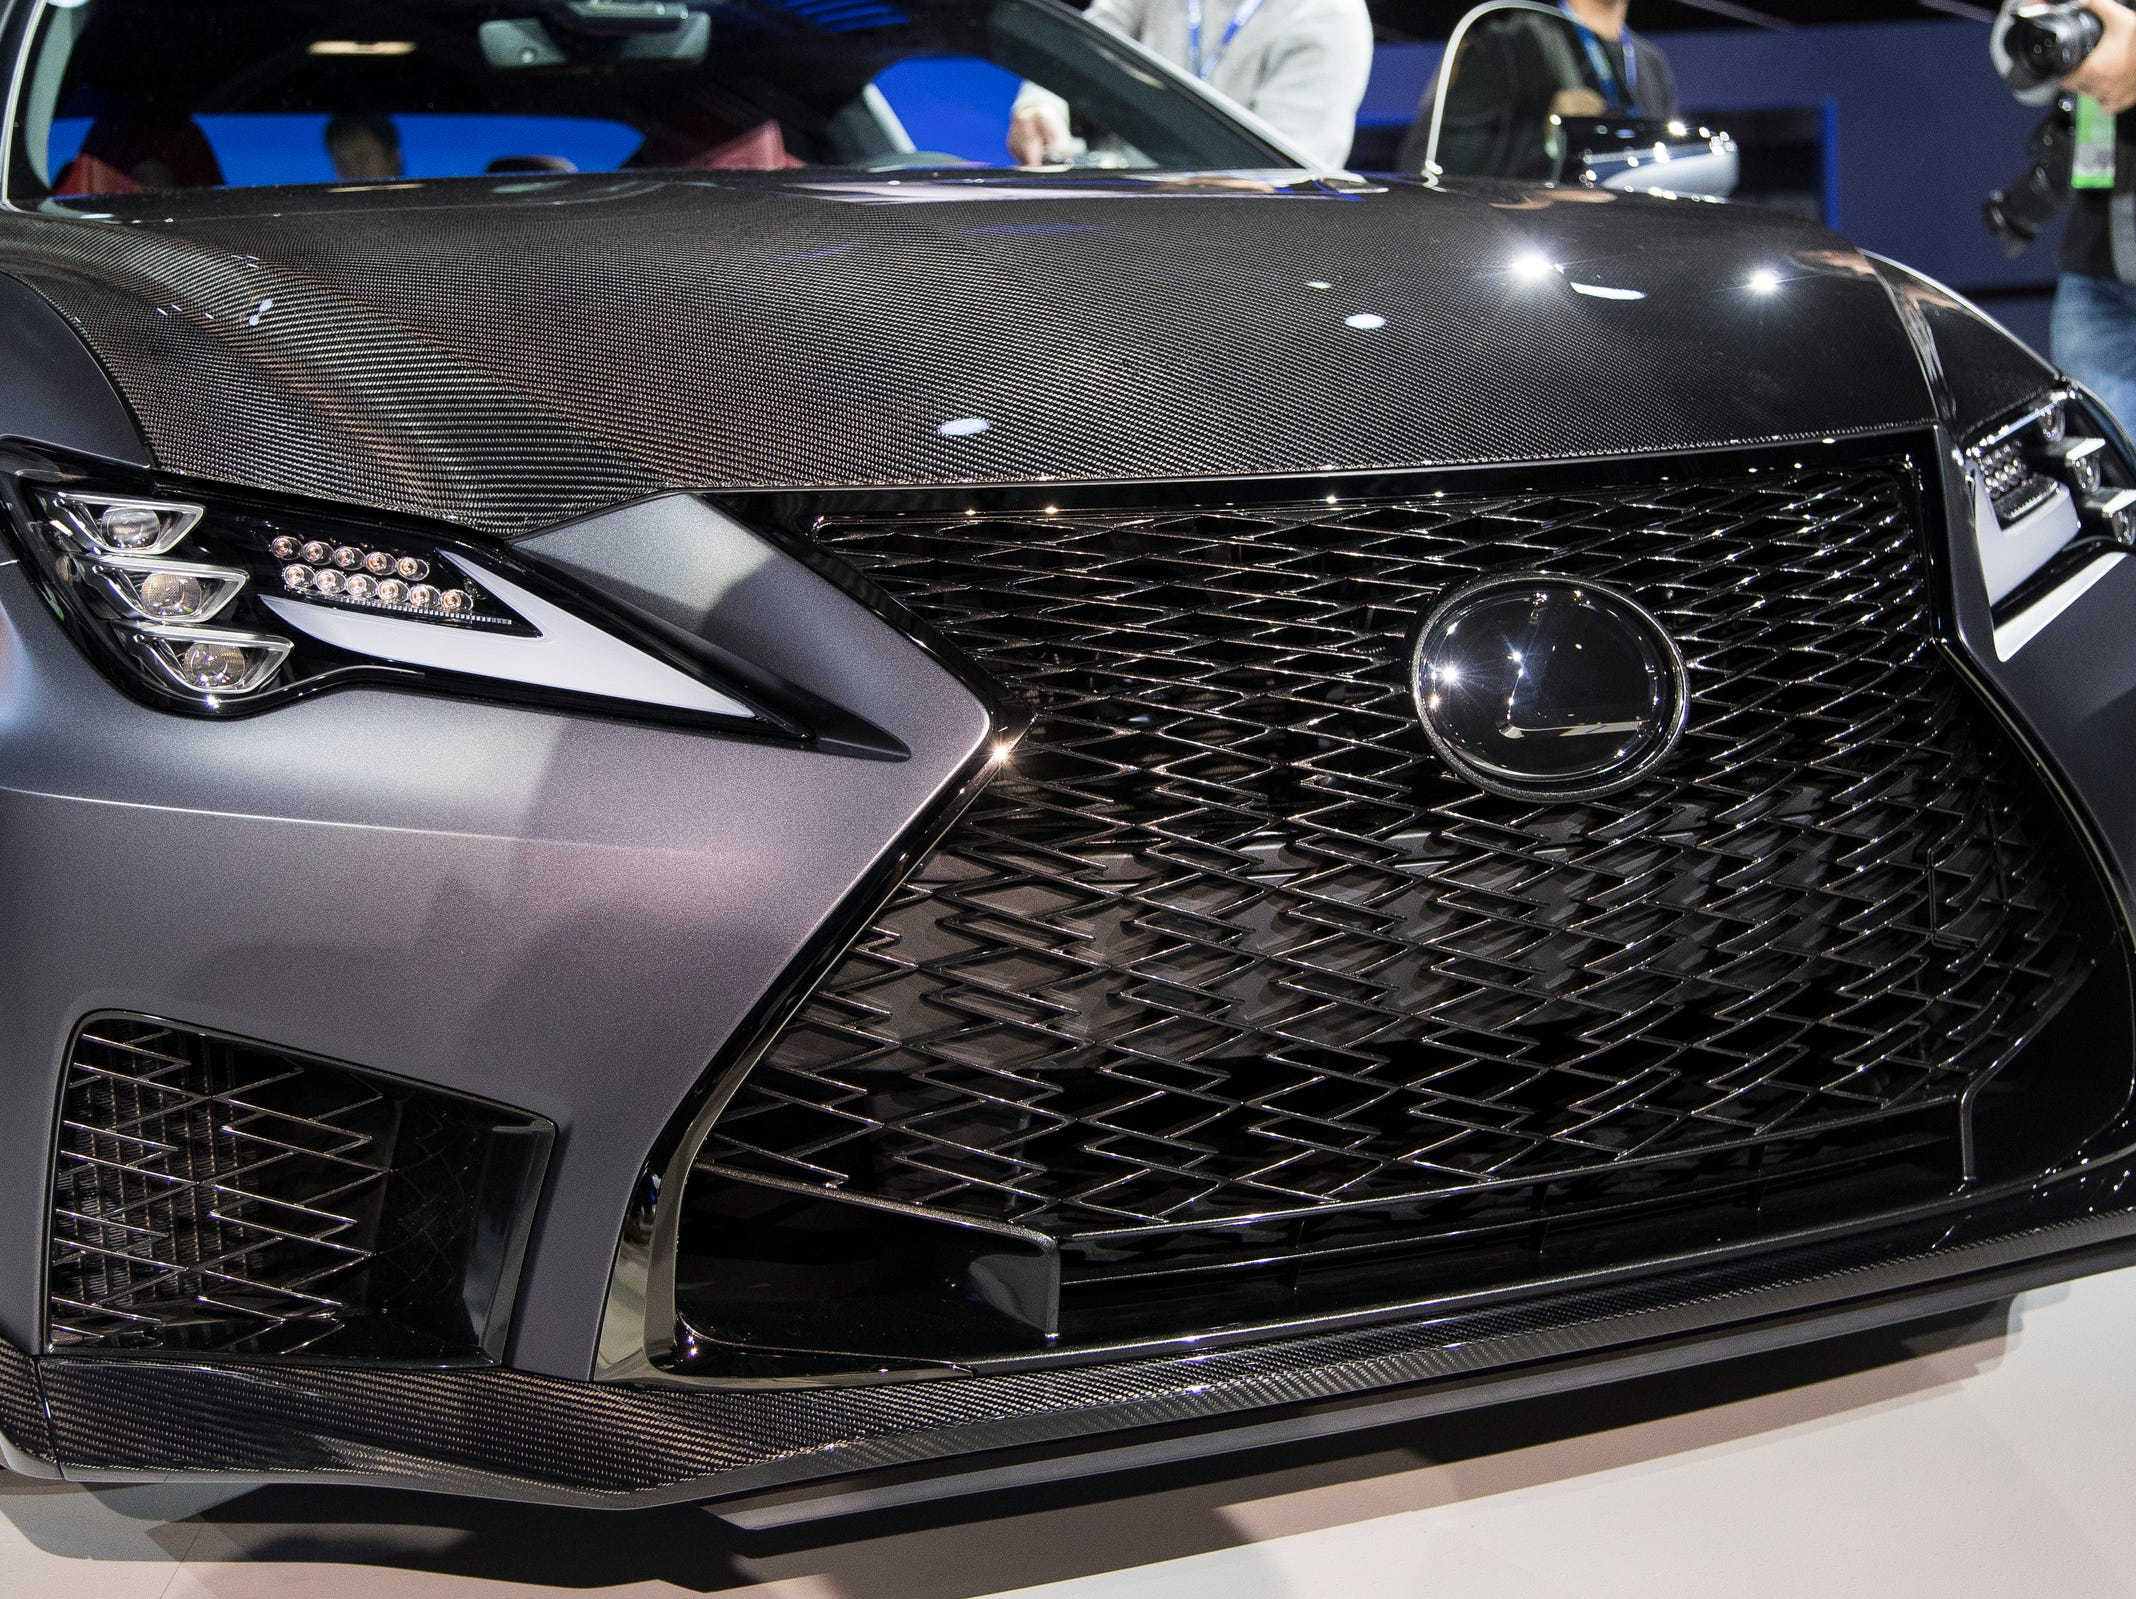 The  LexusRCF Track Edition front grill during the 2019 North American International Auto Show held at Cobo Center in downtown Detroit on Monday, Jan. 14, 2019.